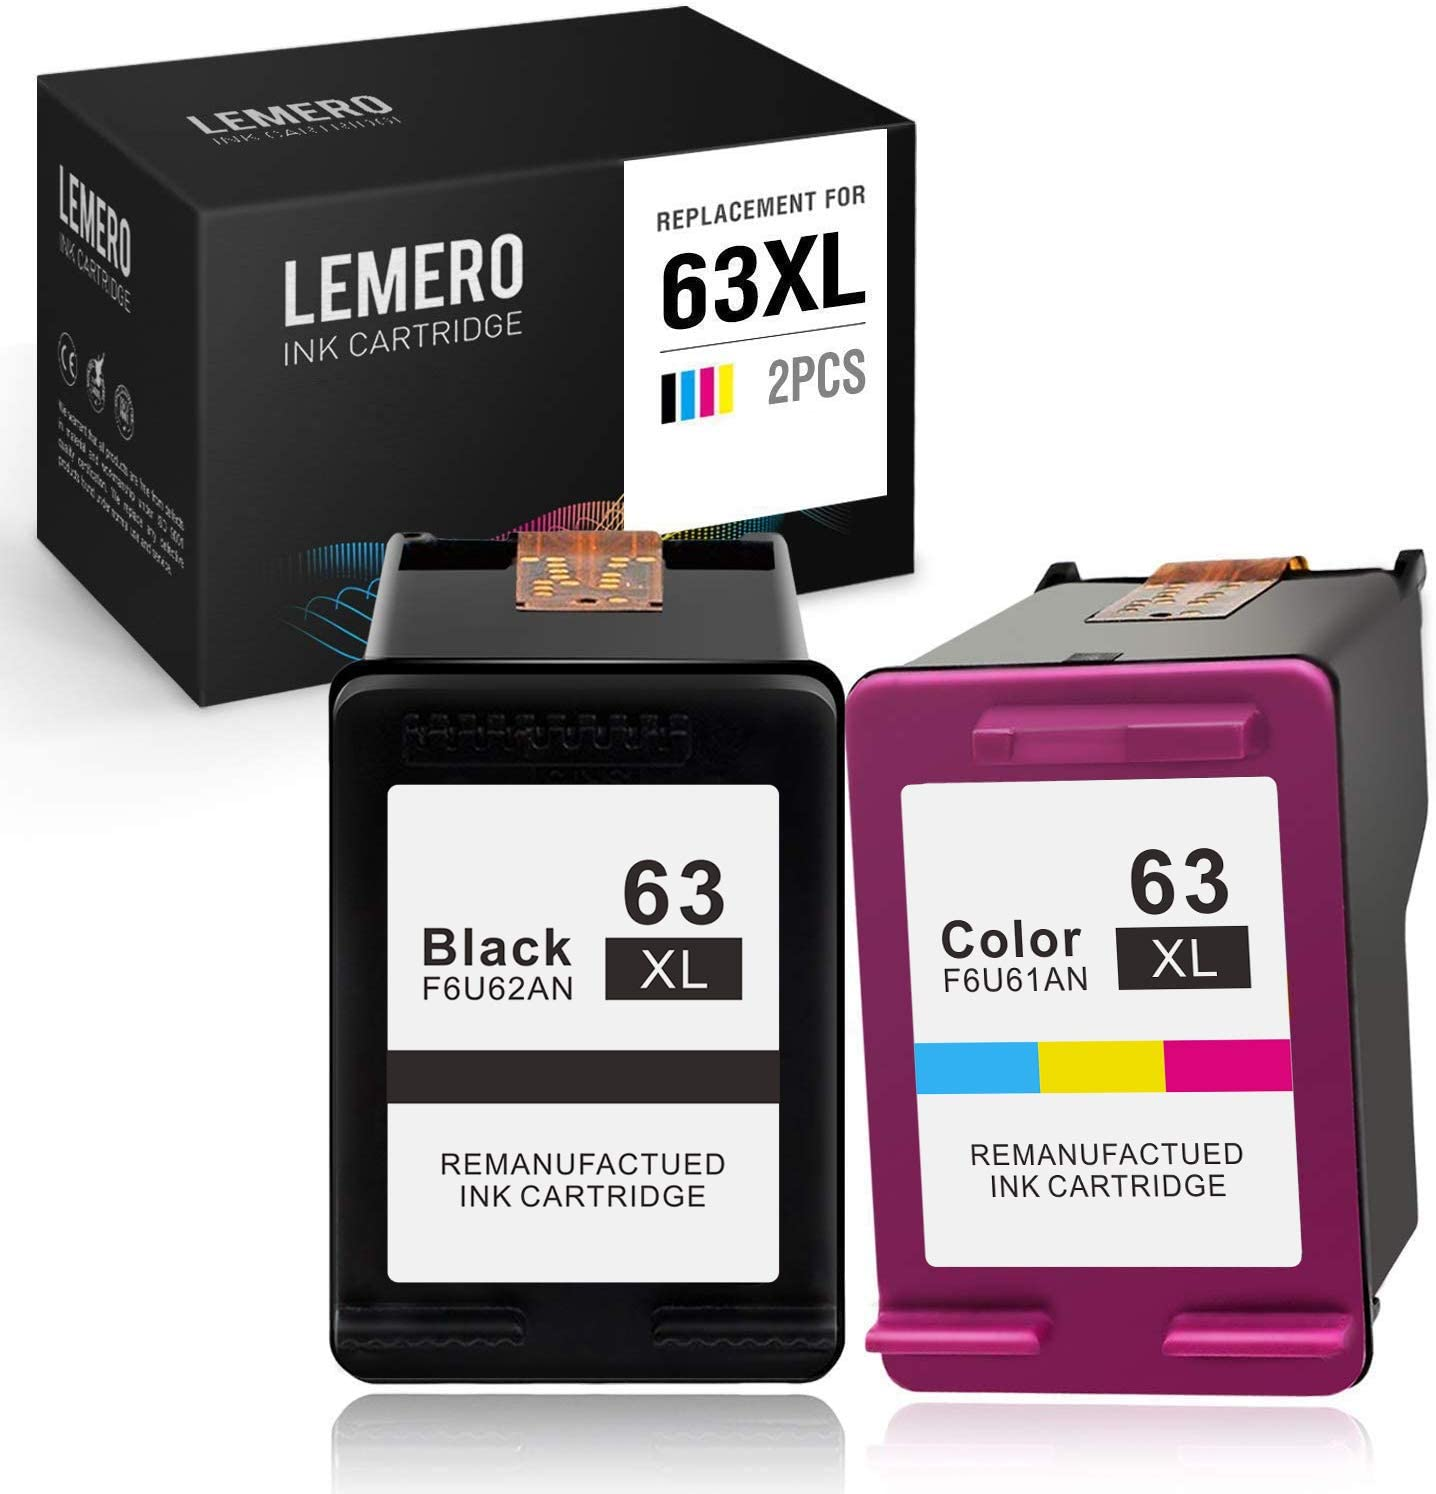 Lemero Remanufactured Ink Cartridge Replacement for HP 63 63XL (1 Black & 1 Tri-Color) for Officejet 5255 5258 4650 3830 4652 Envy 4520 4512 Deskjet 3630 1112